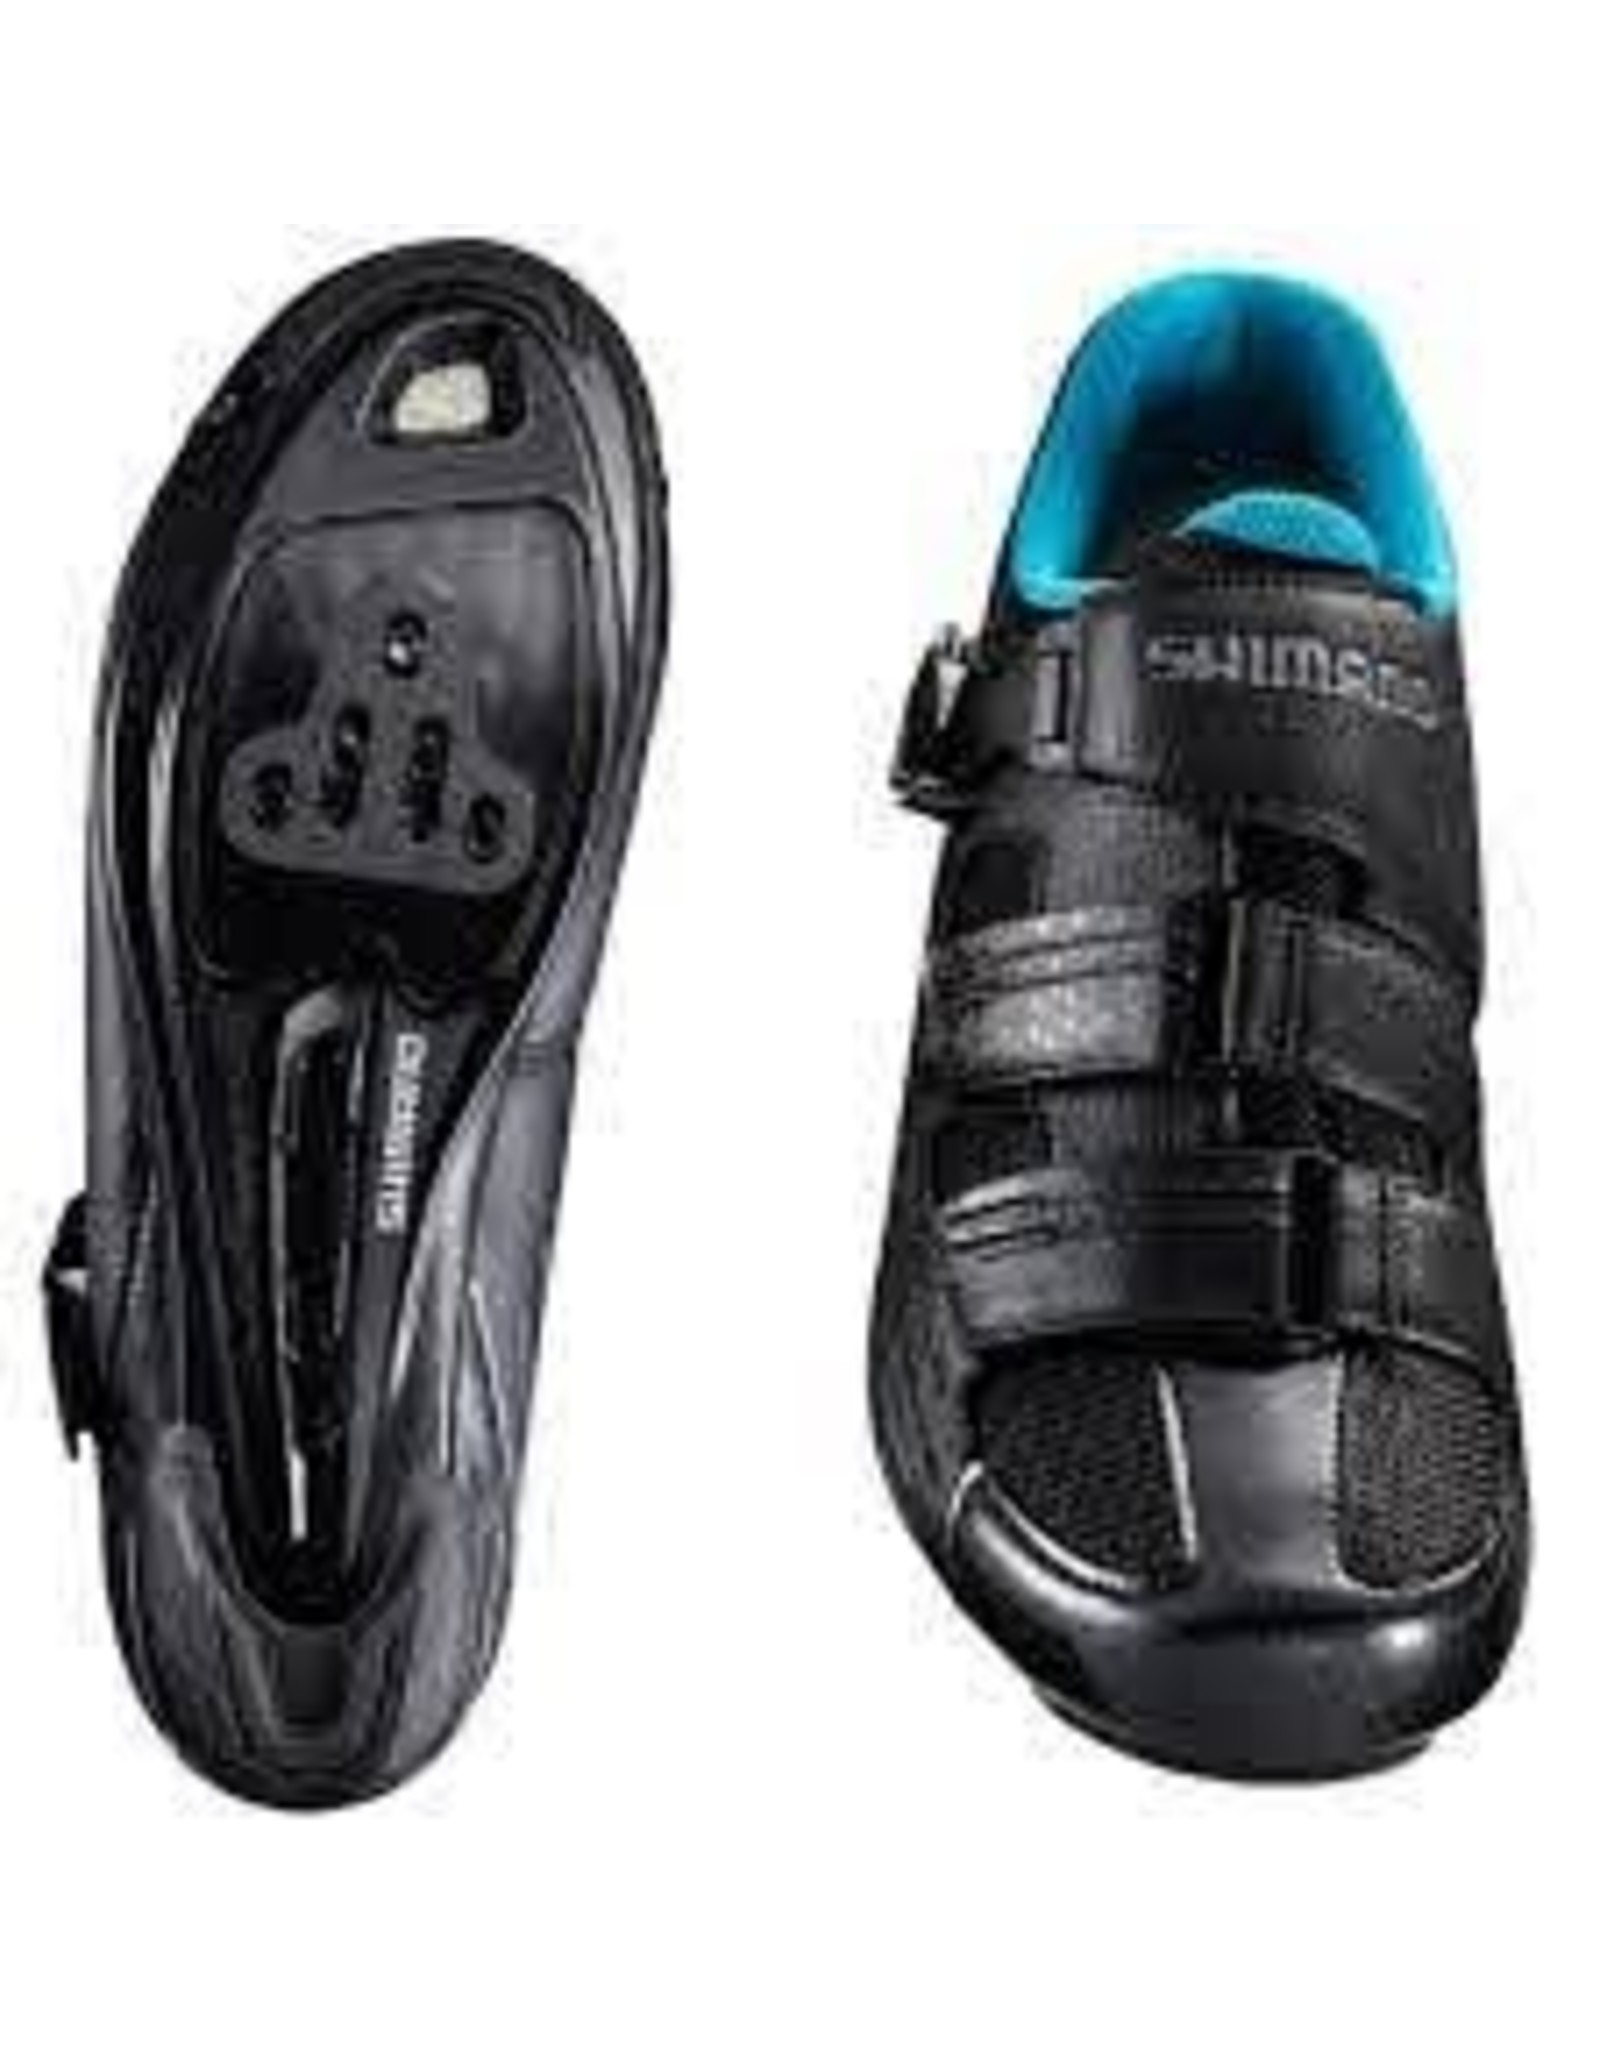 SH-RP3W Bicycle Shoes BLACK 38